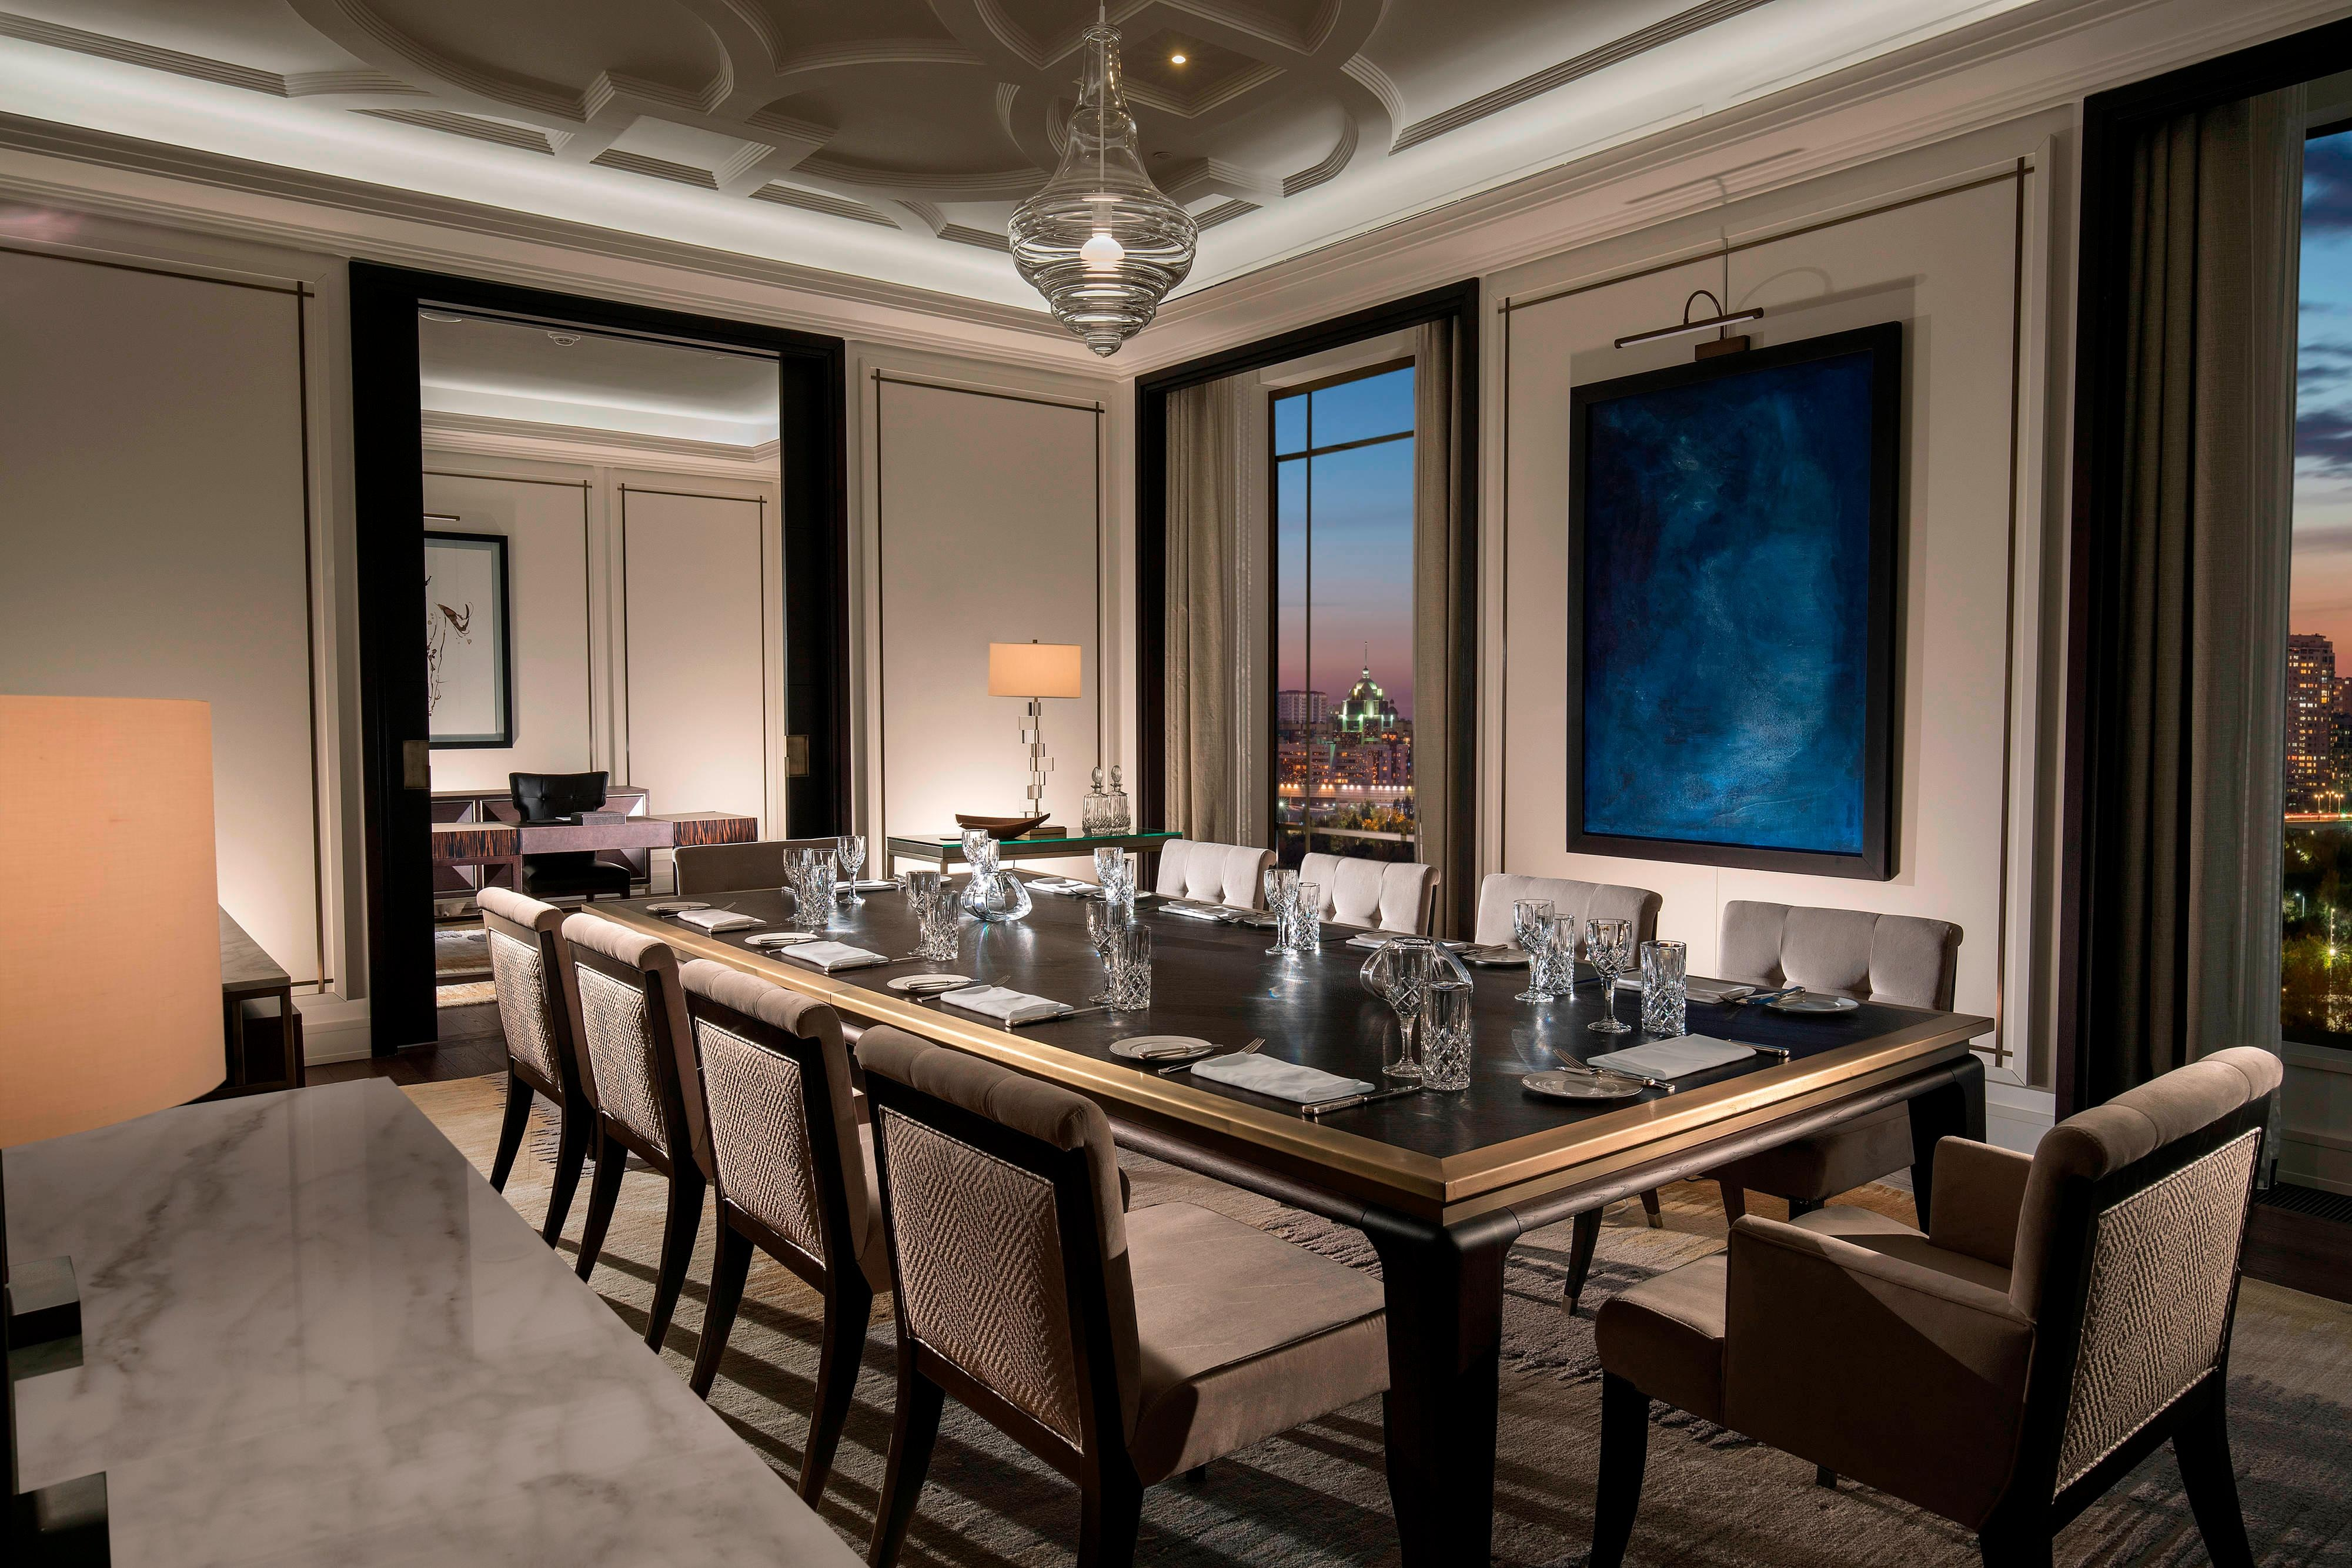 Presidential Suite - Dining Room and Study